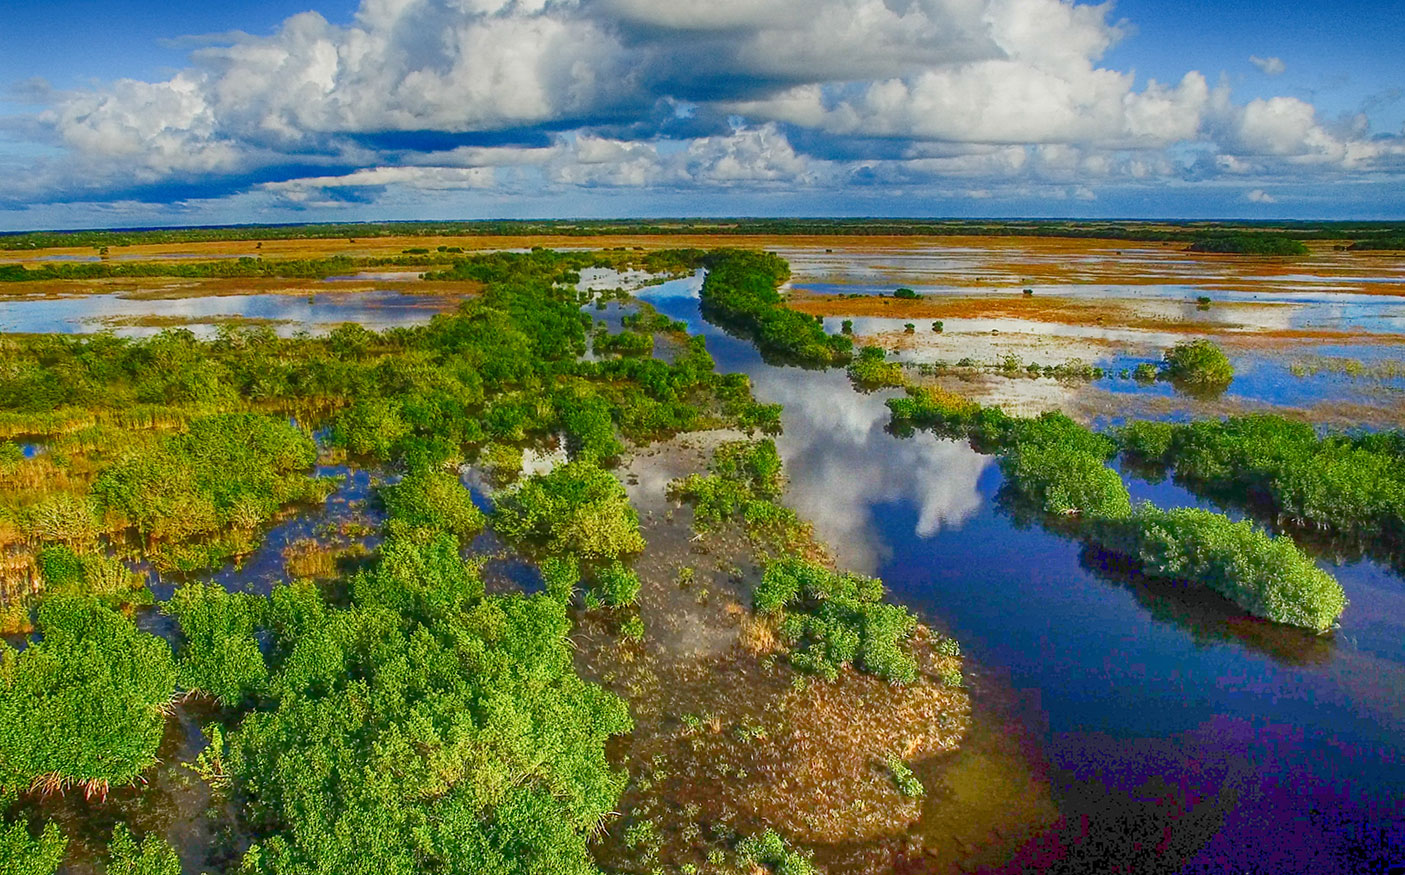 Aerial view of the Everglades and Lake Okeechobee